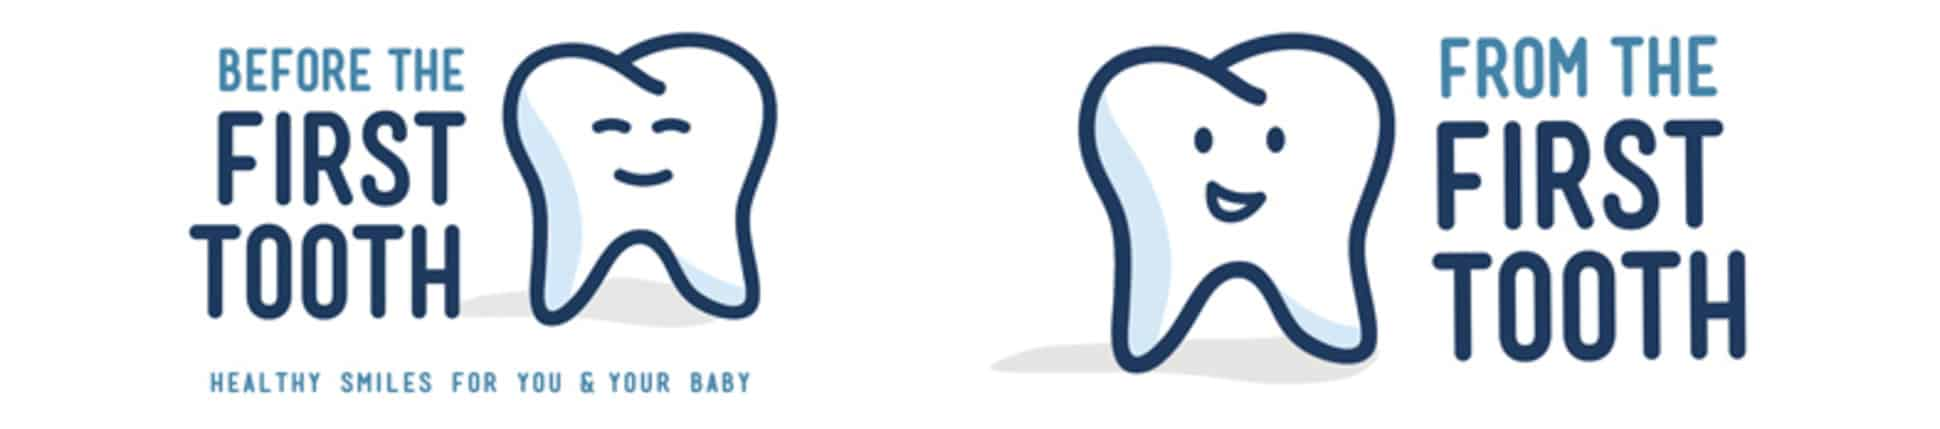 Before the First Tooth Logo